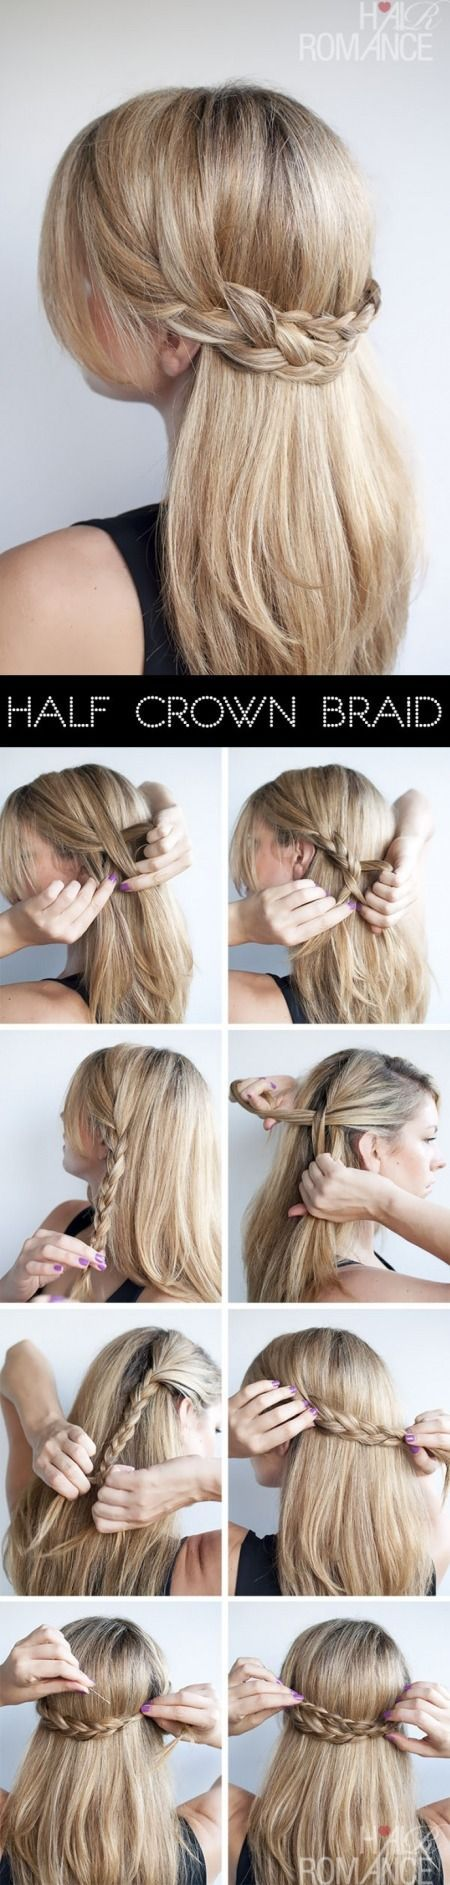 Prime 1000 Ideas About Easy Hairstyles On Pinterest Hairstyles For Hairstyles For Women Draintrainus